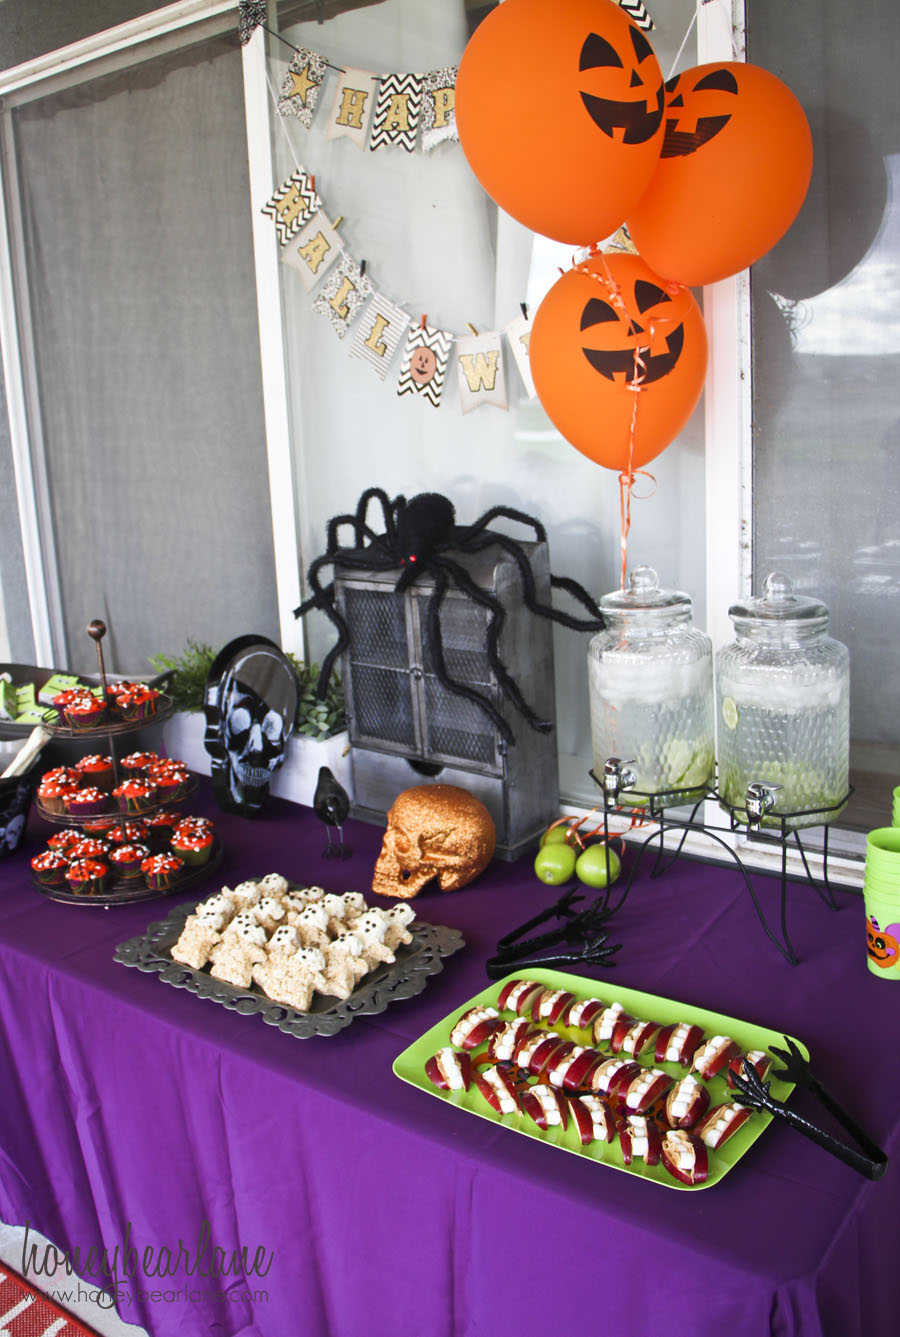 Halloween Theme Party Ideas For Kids.Kids Halloween Party Ideas Honeybear Lane